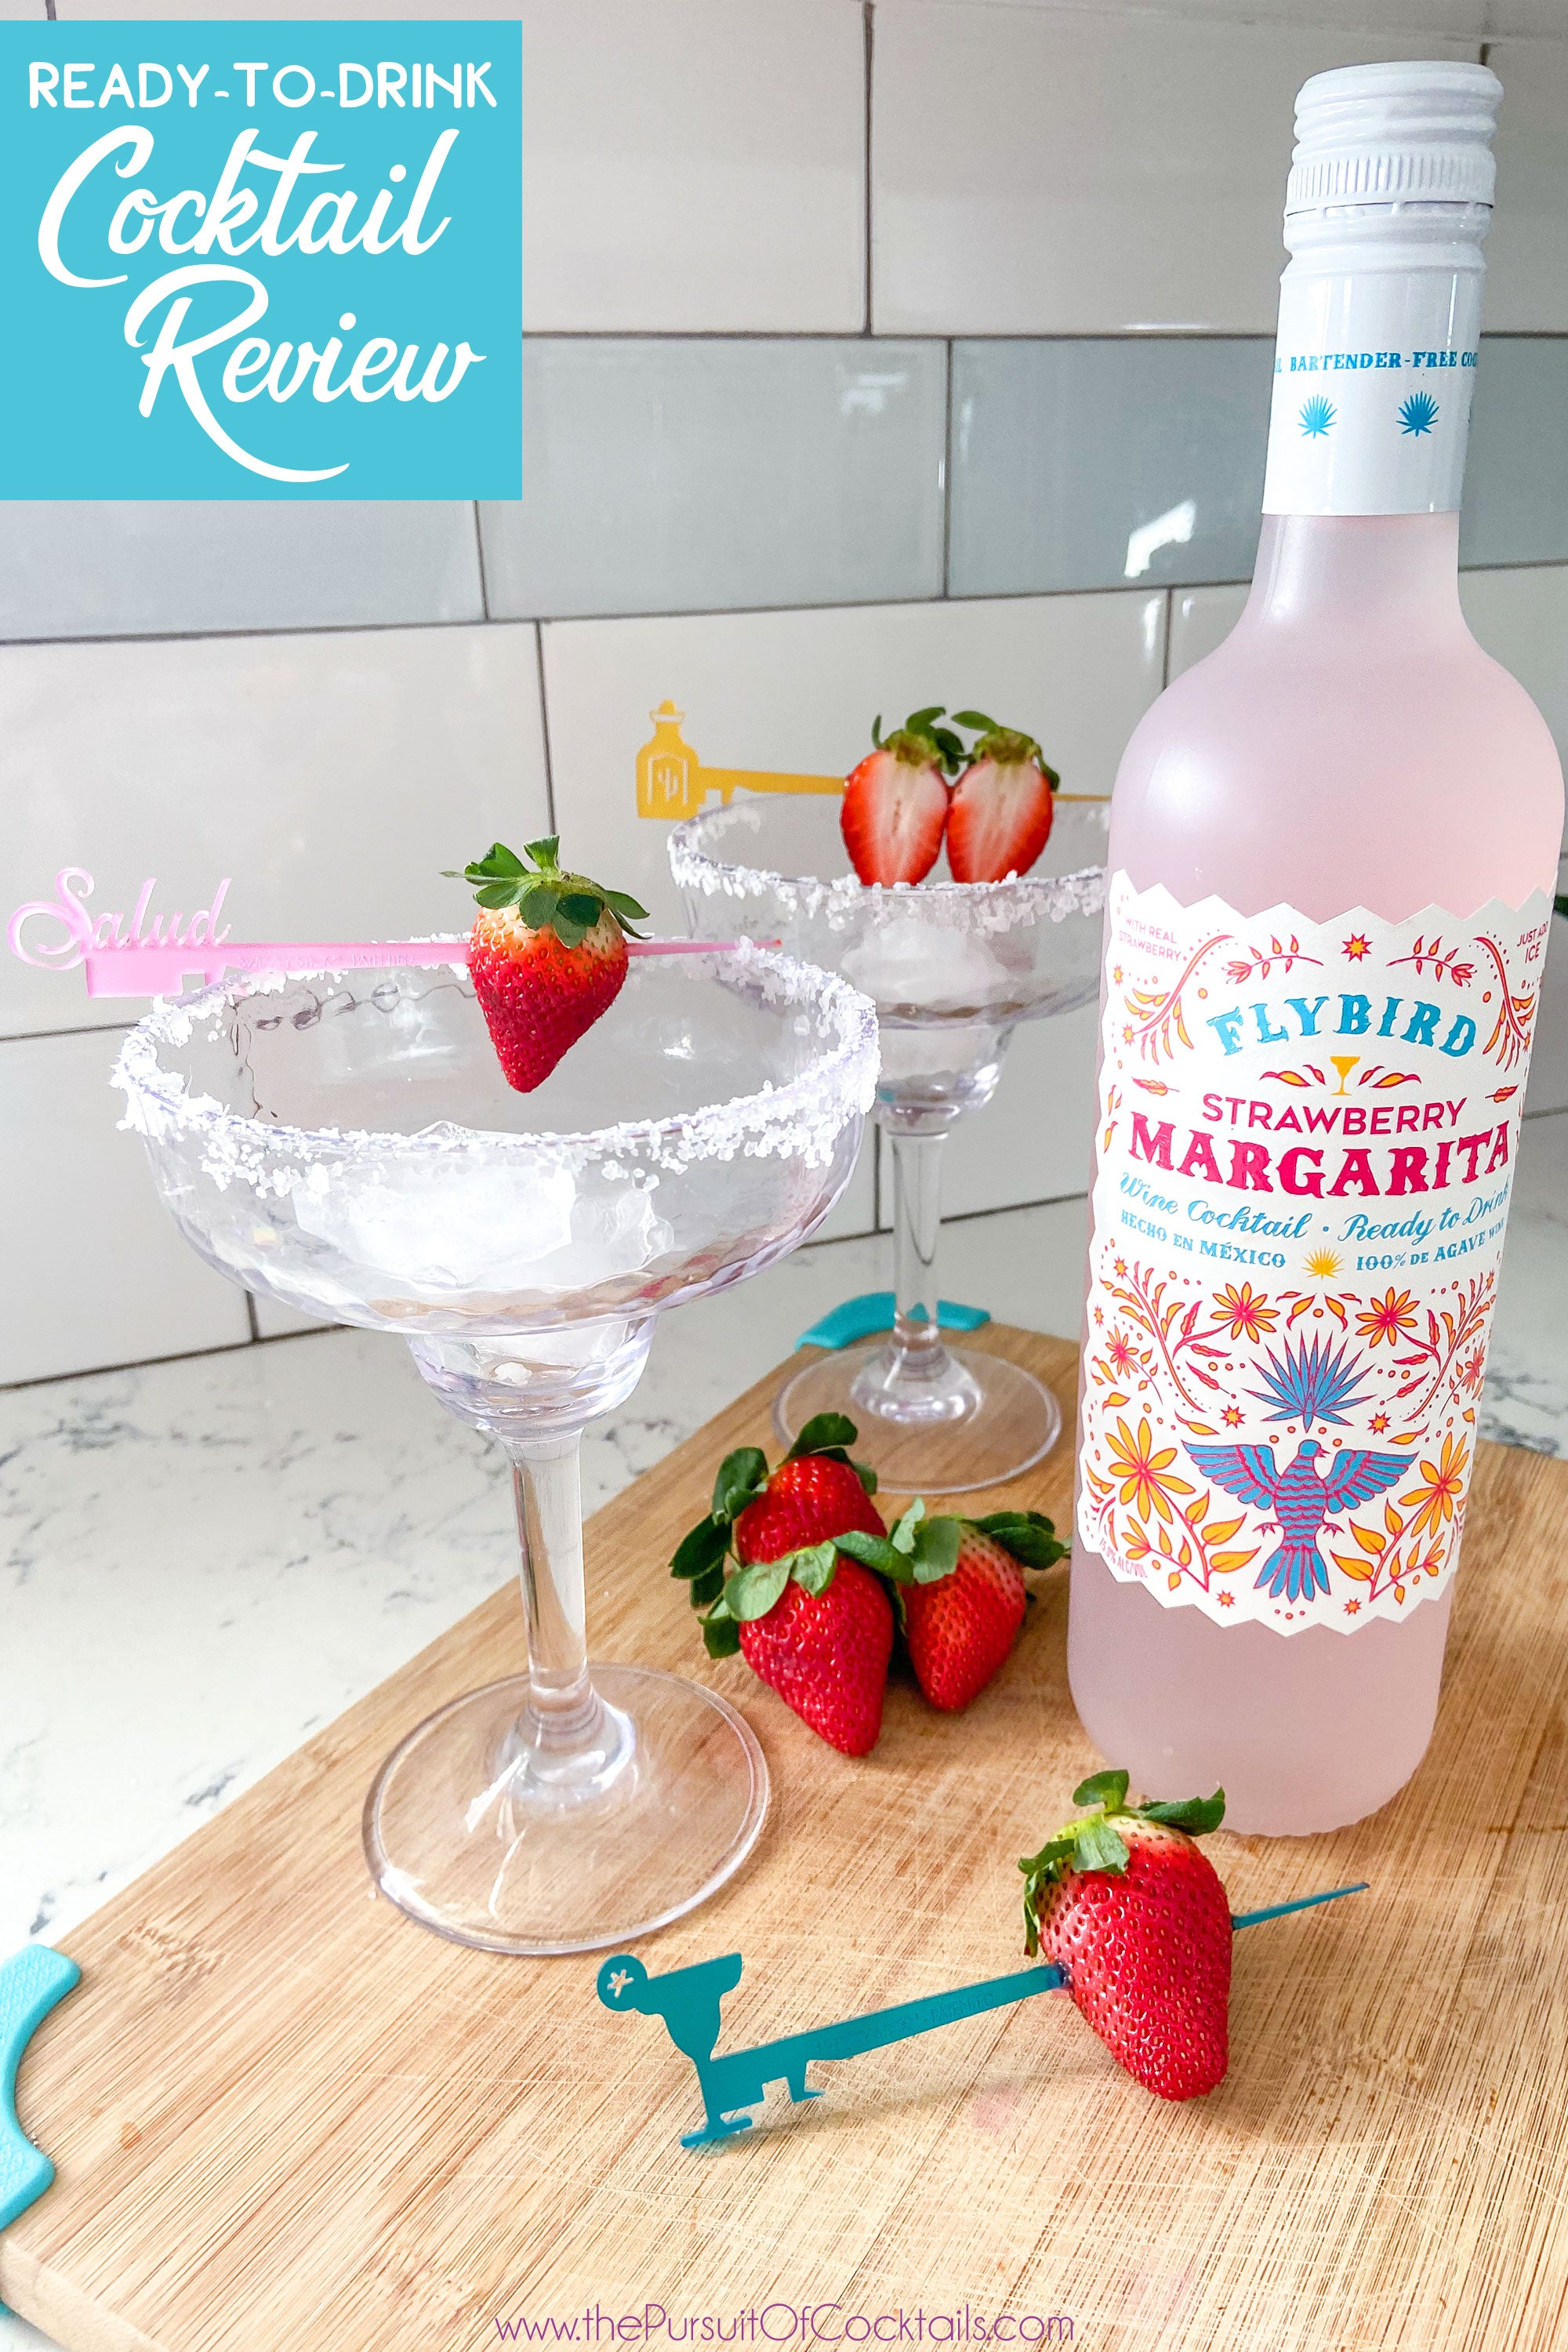 Ready to drink margarita review of Flybird Strawberry Margarita by The Pursuit of Cocktails